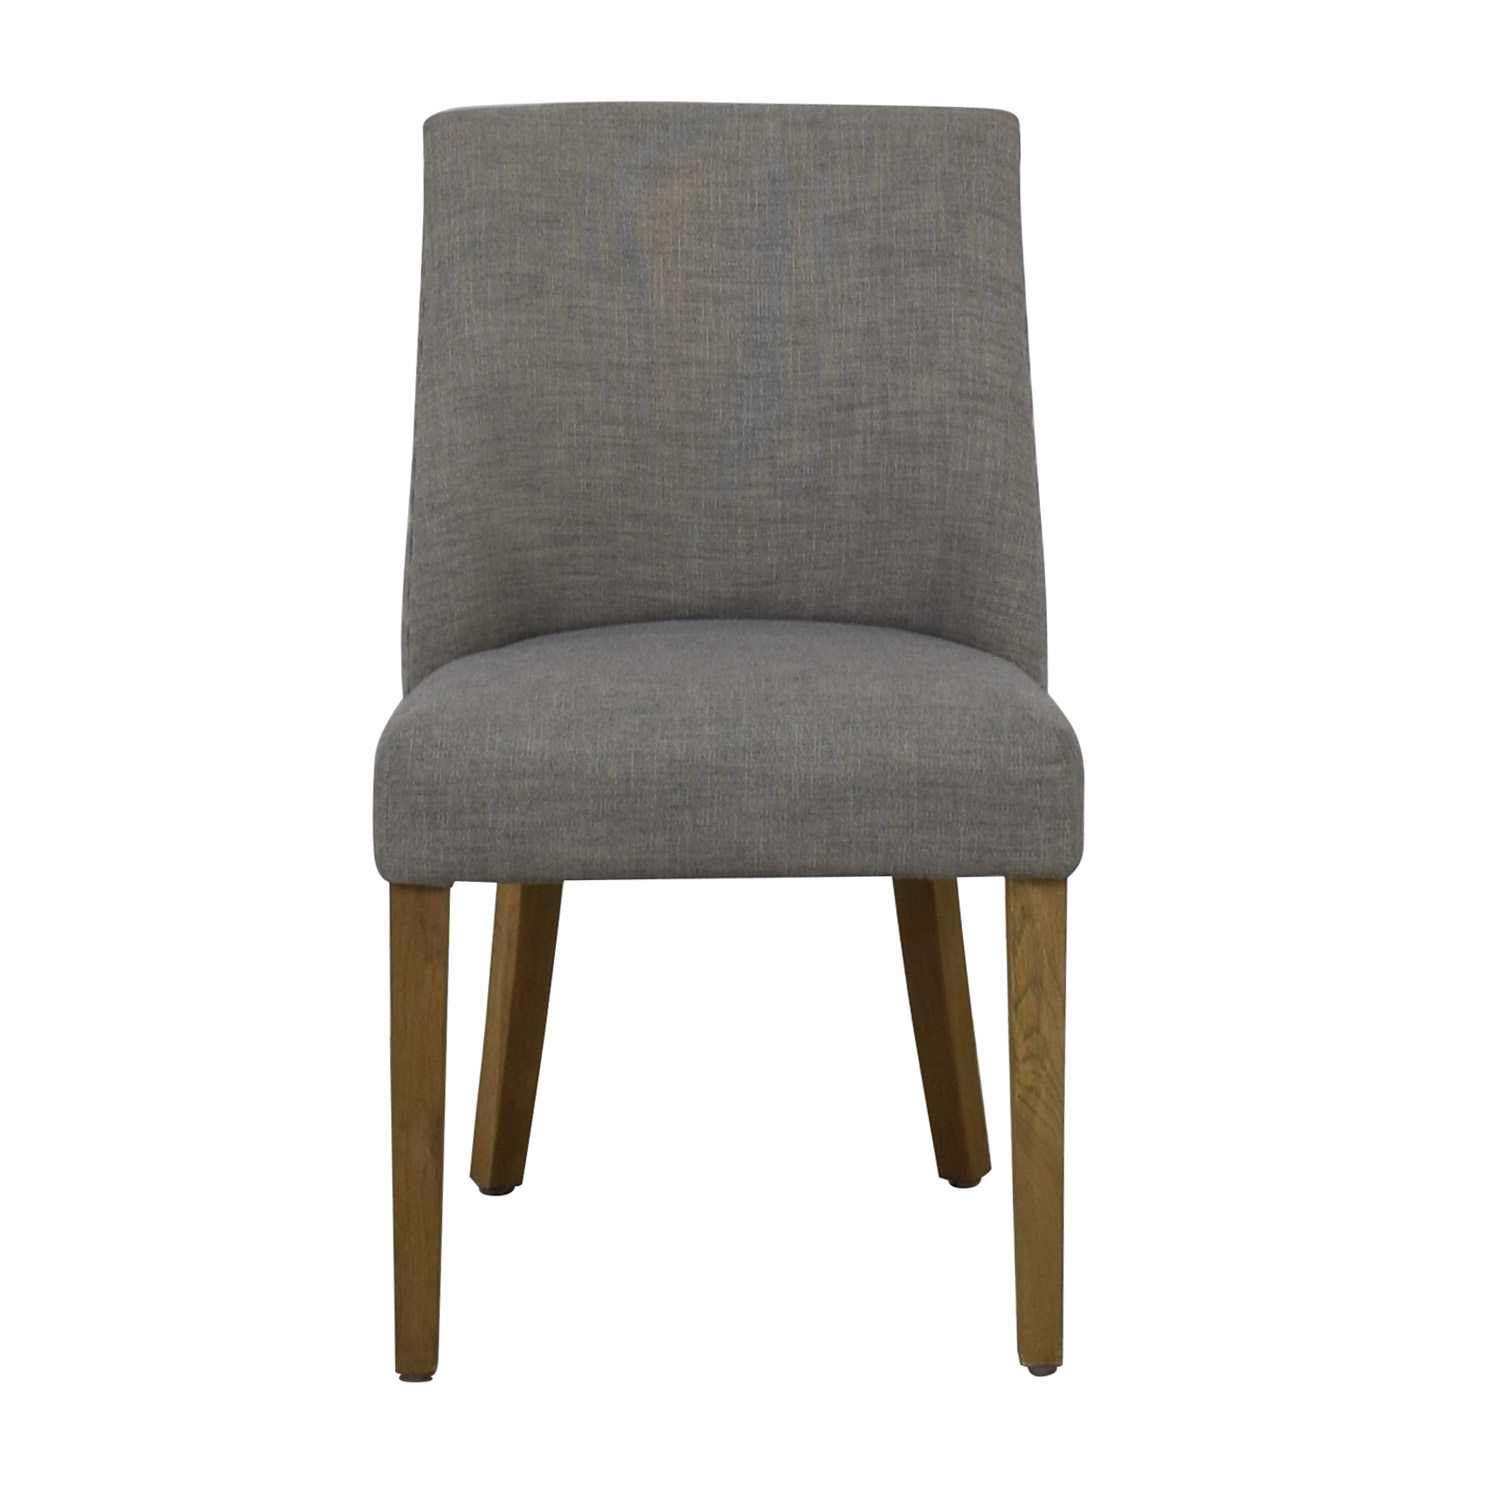 Restoration Hardware 1940S French Barrelback Fabric Side Chair / Dining Chairs